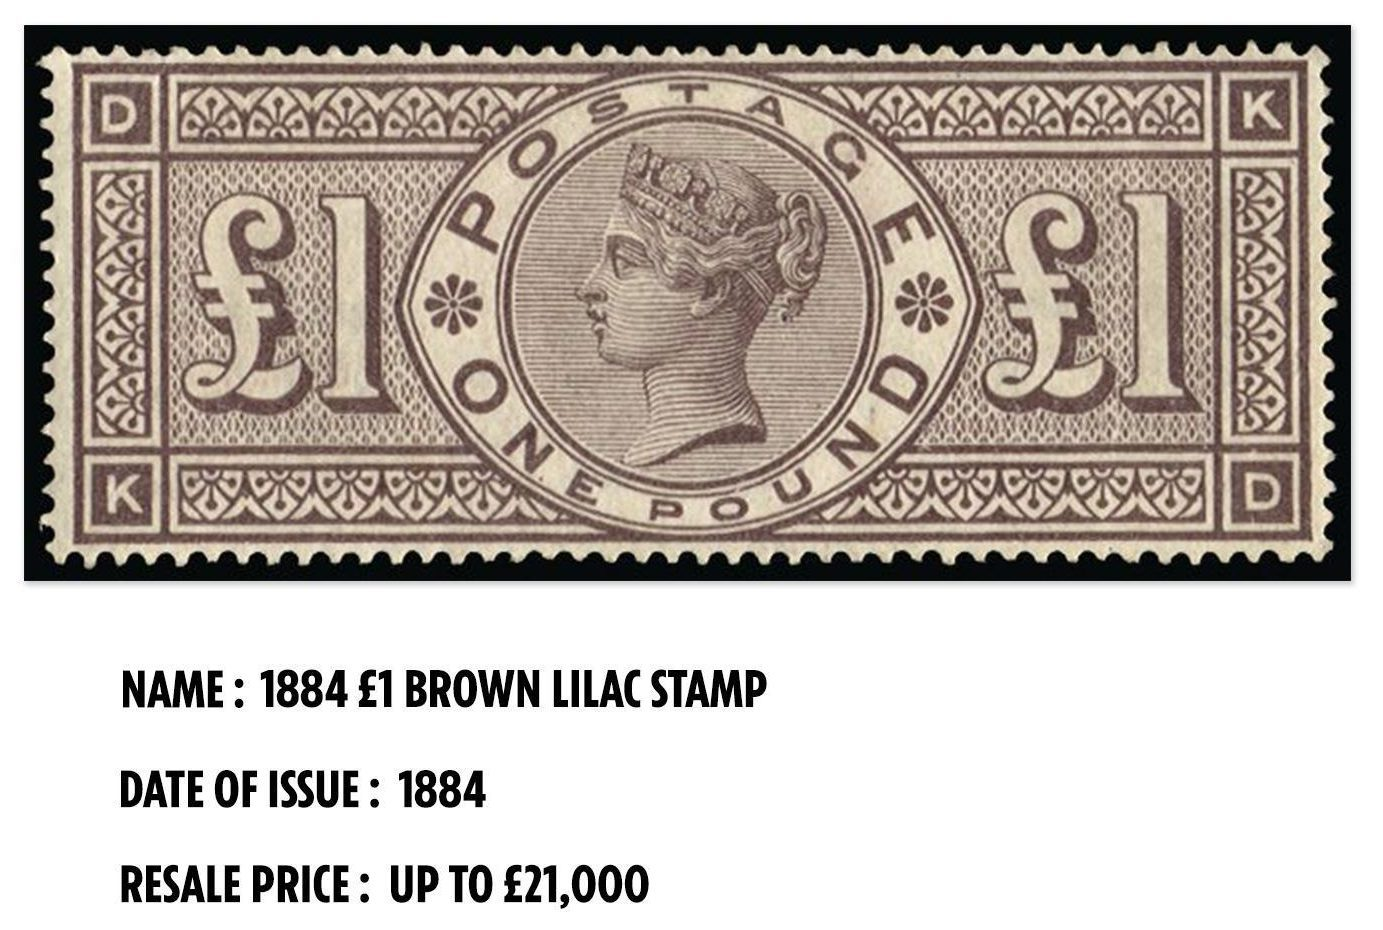 A mint condition version of this stamp sold for £21,000